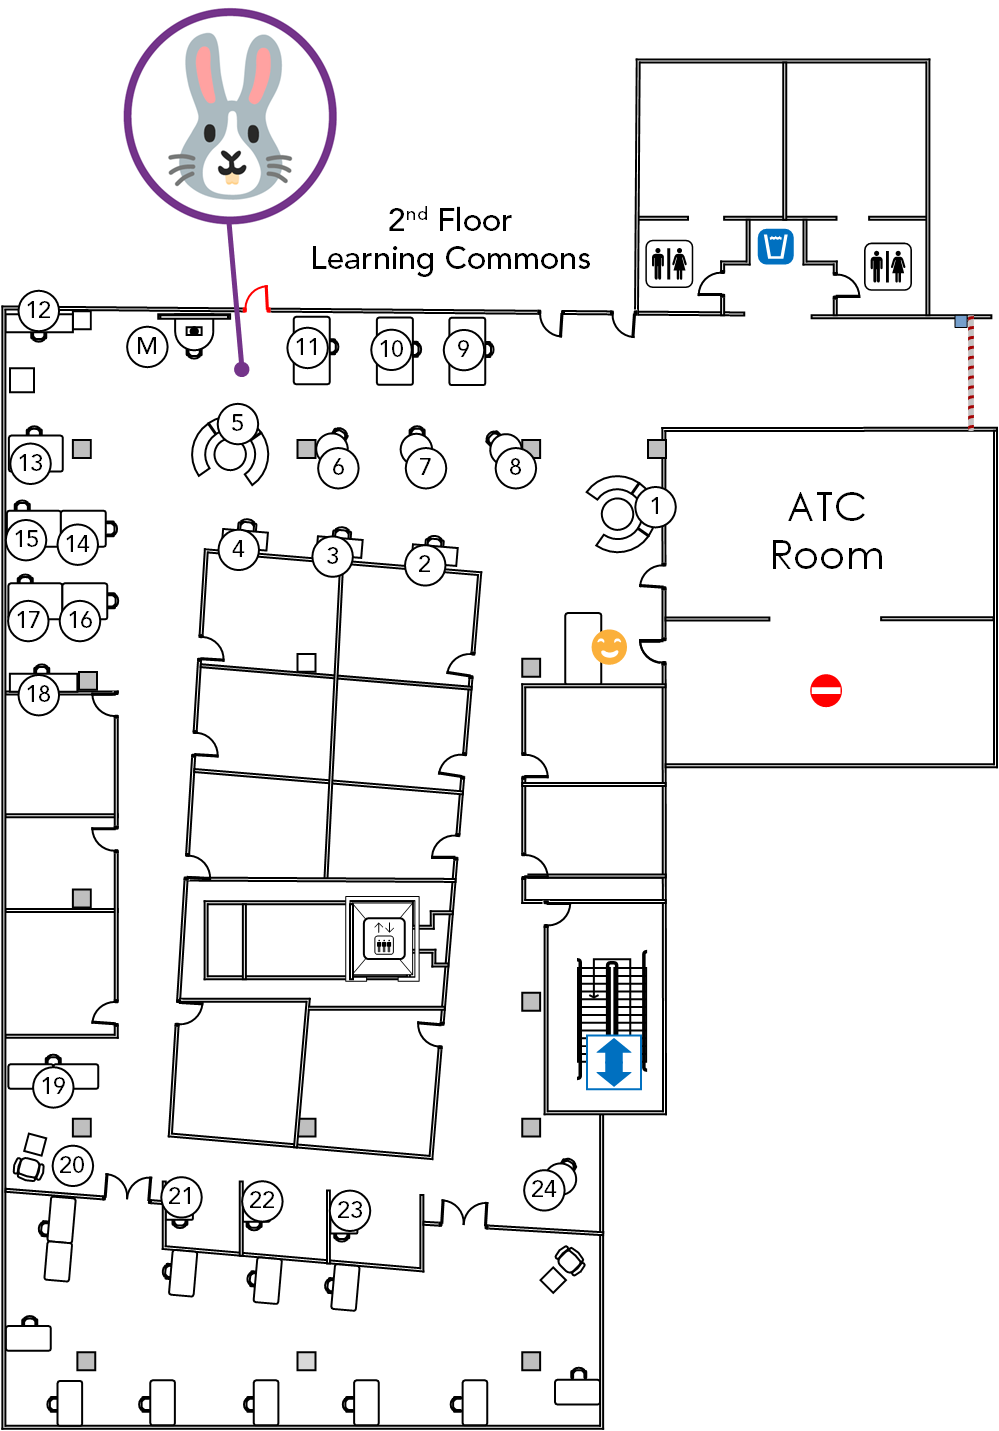 2nd Floor Learning Commons